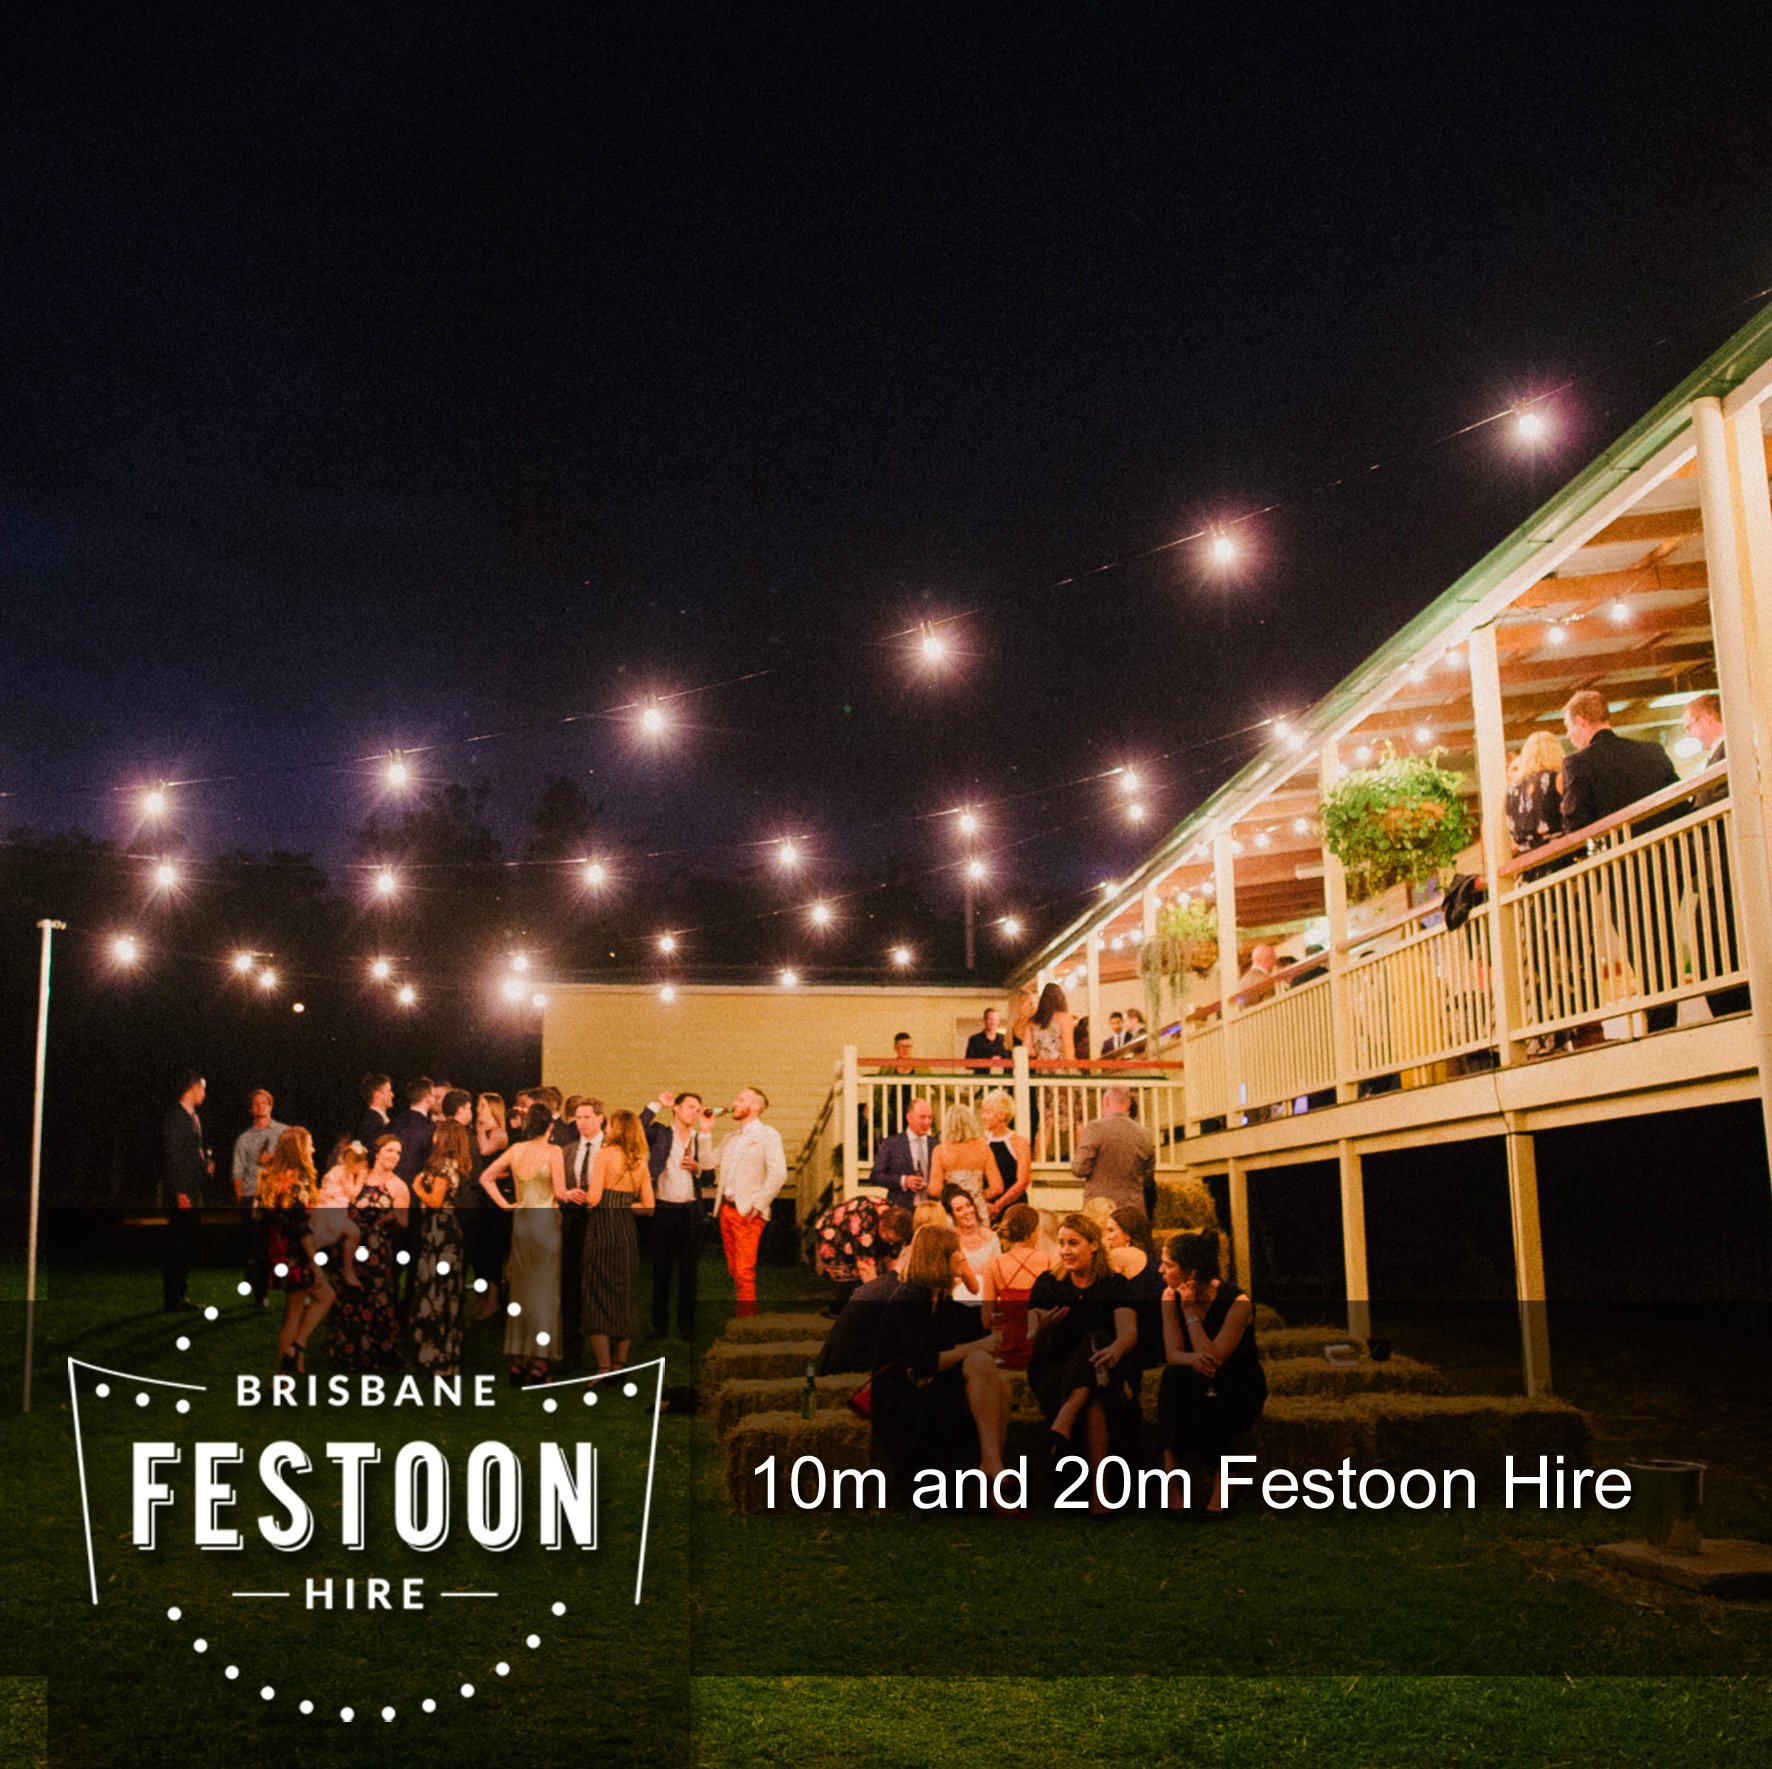 Brisbane Festoon Hire - 10m and 20m Festoon Hire 5.jpg